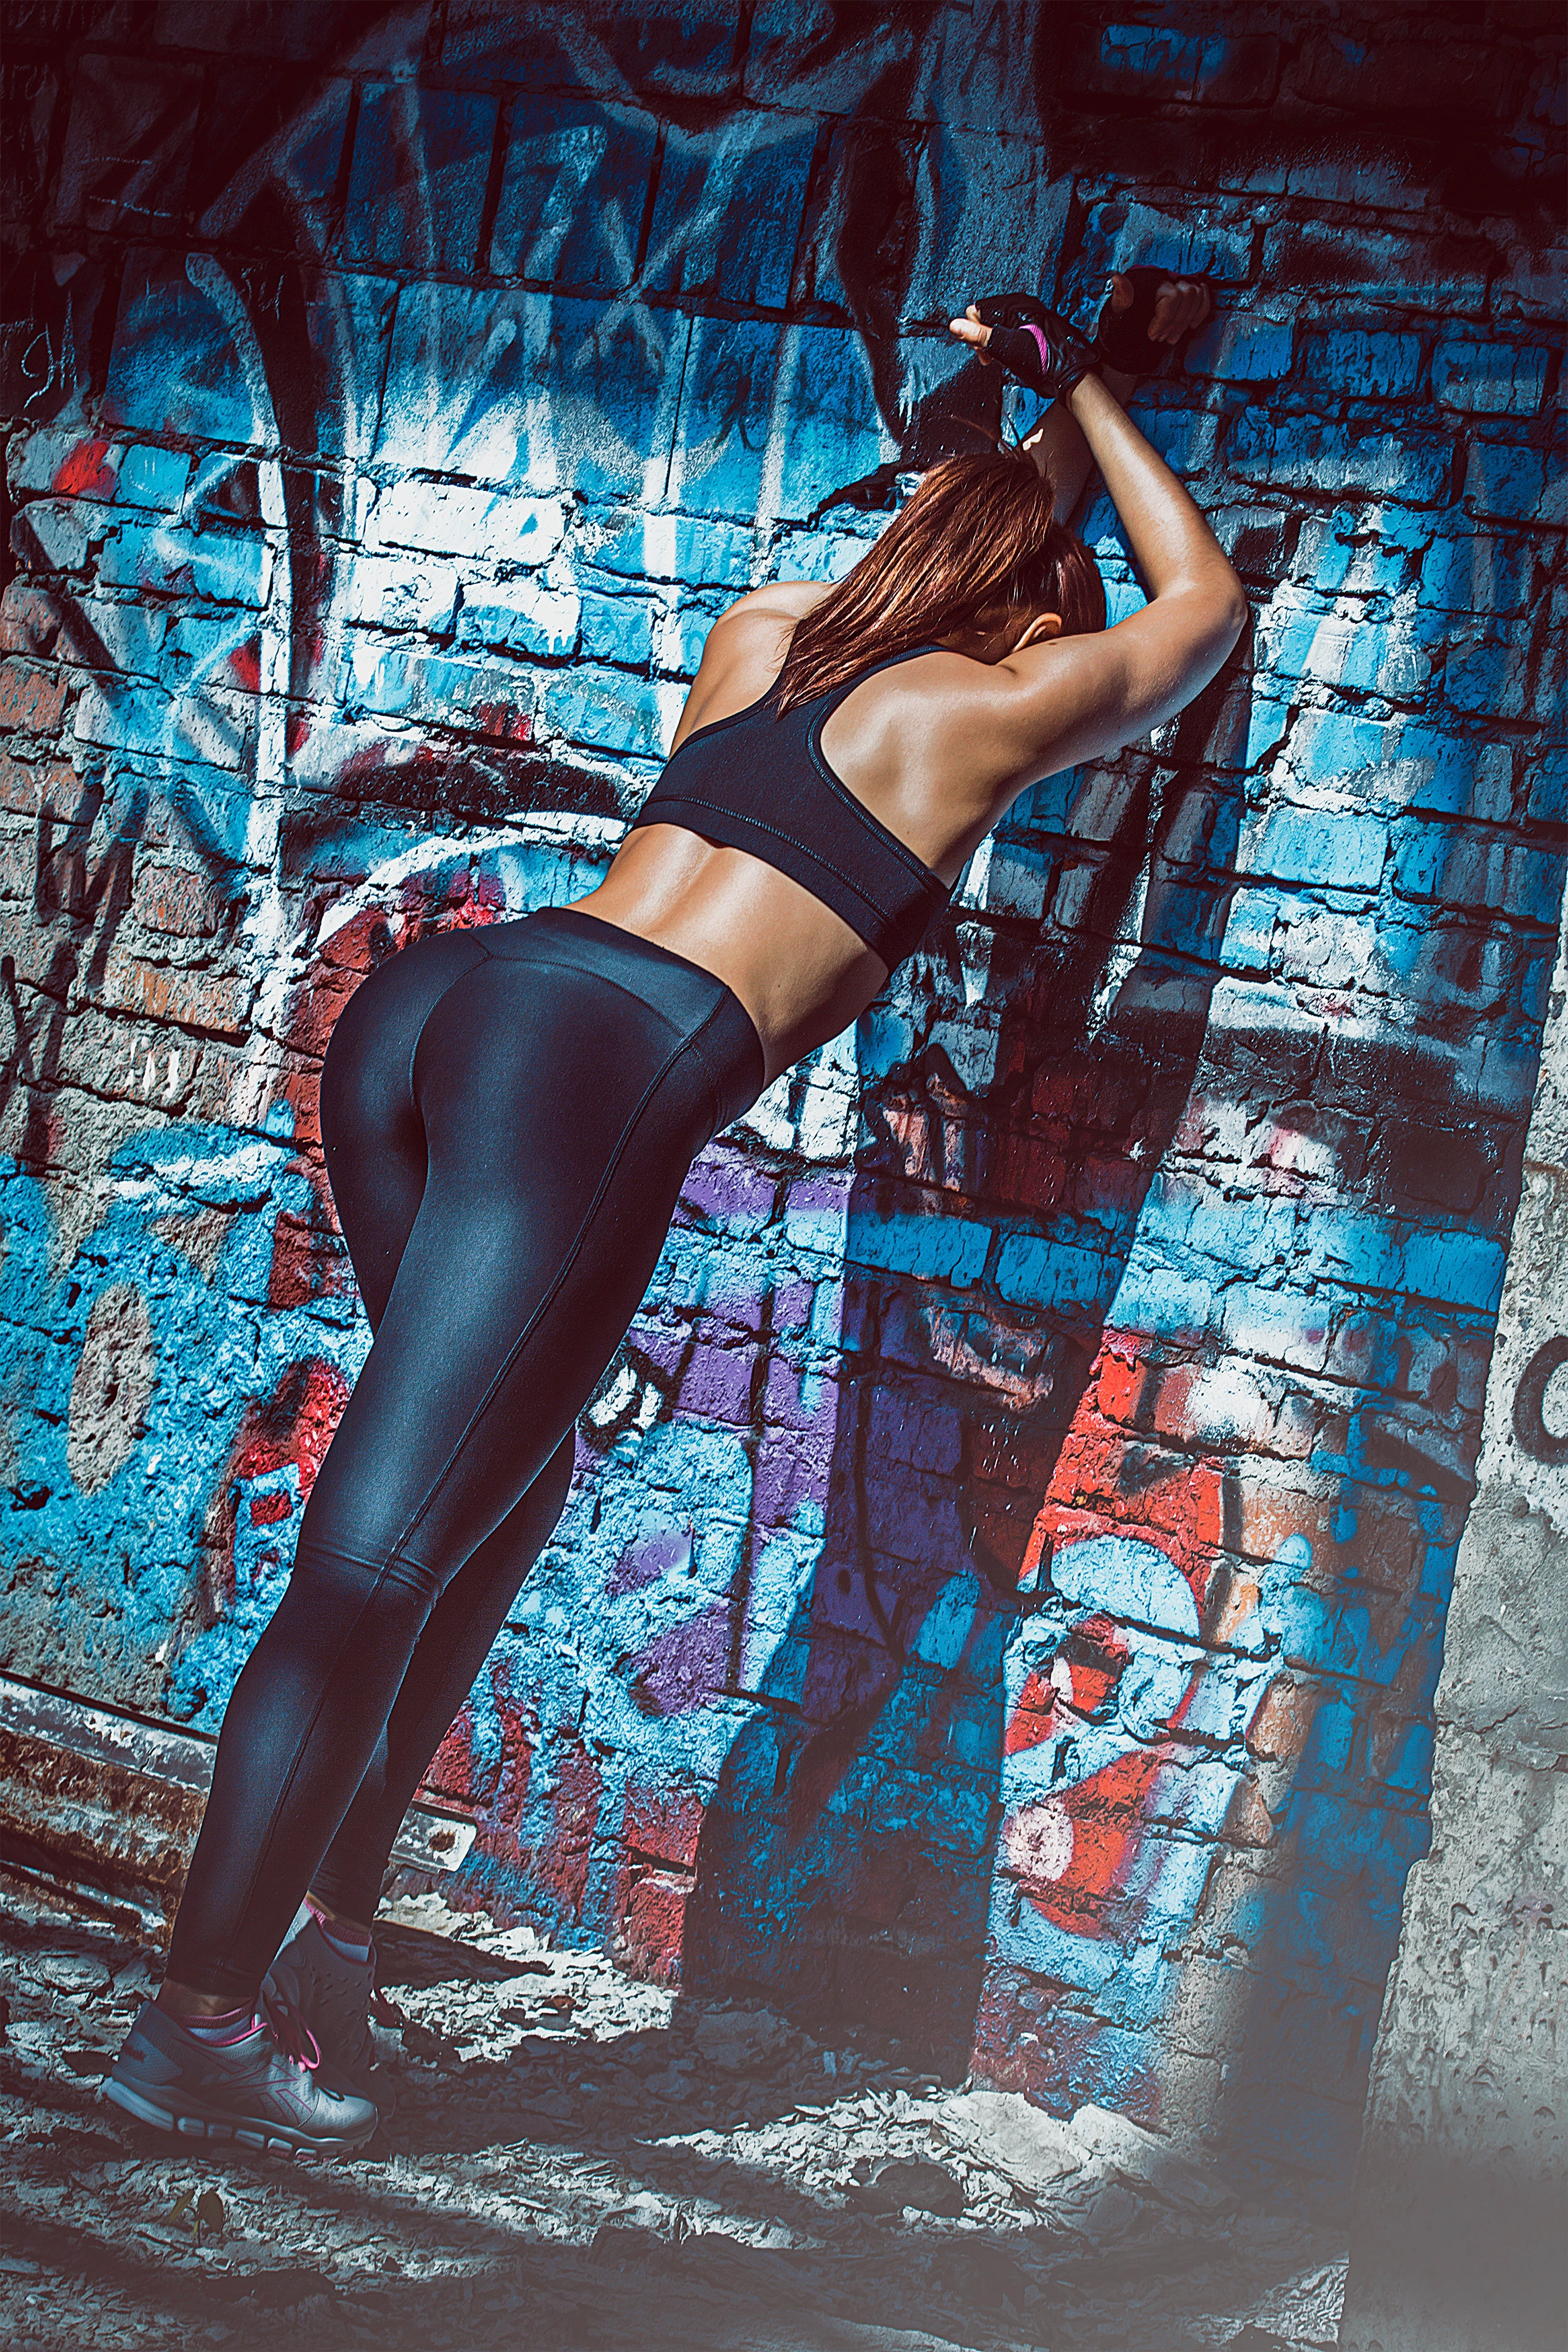 Person Leaning on the Wall Wearing Sports Bra and Leggings